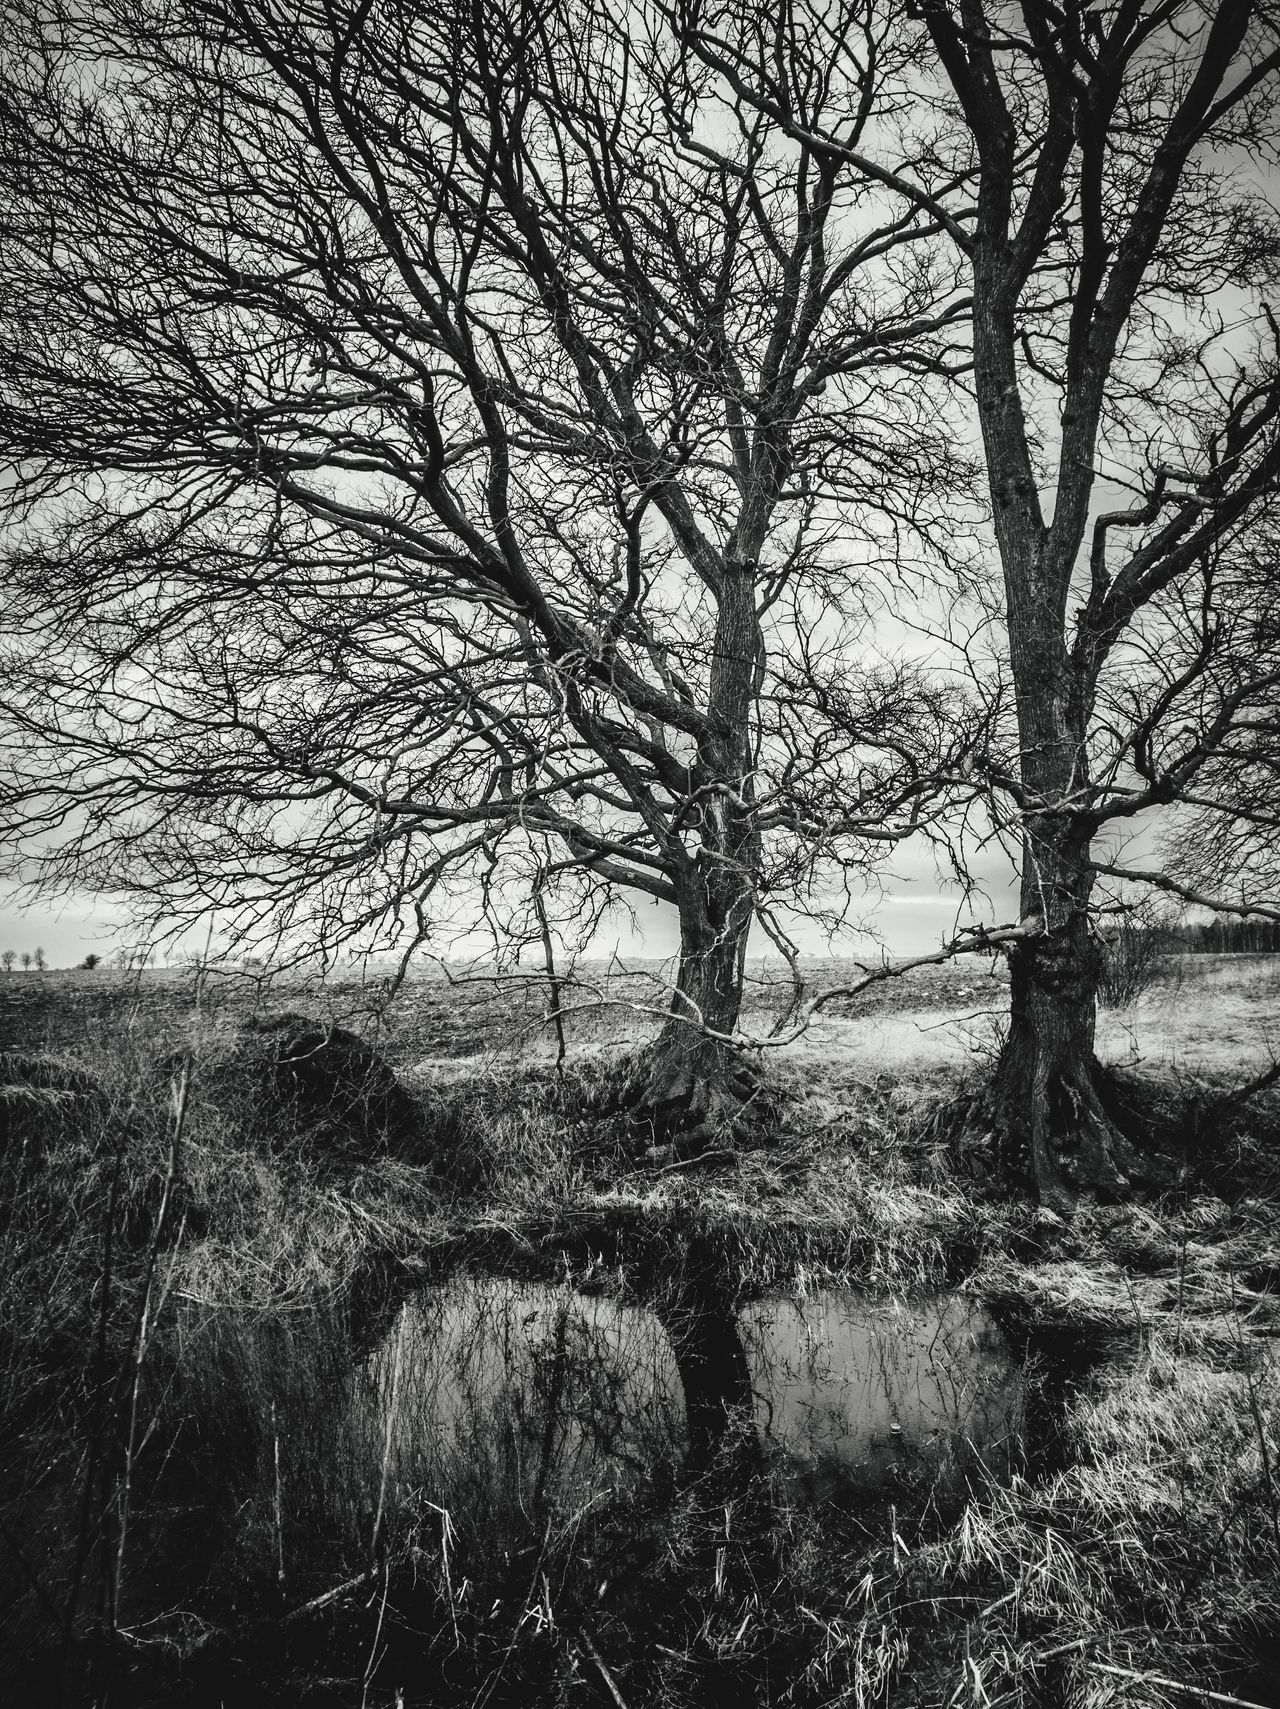 Tree Nature No People Outdoors Beauty In Nature Sky Water Blackandwhite Poland HuaweiP9 Www.tomaszkucharski.com.pl Polishphotographer Huawei Bare Tree